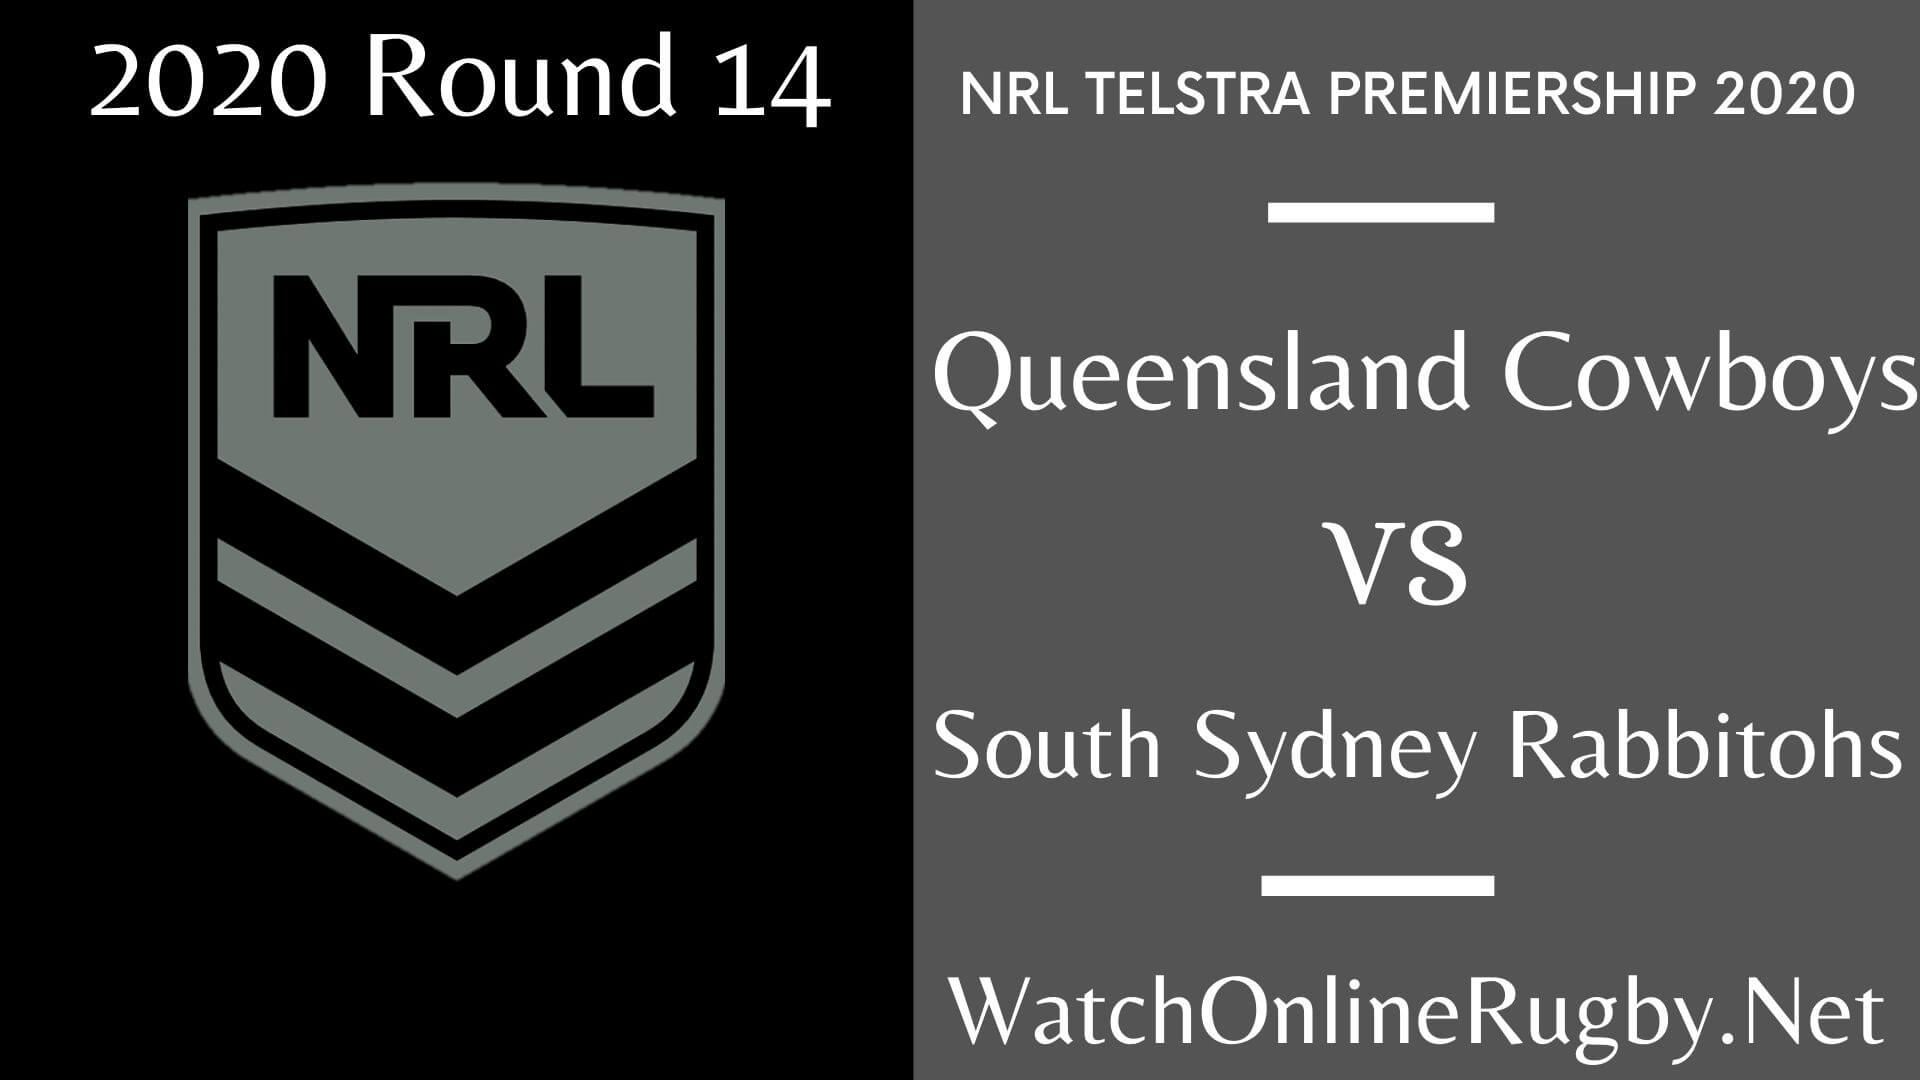 Queensland Cowboys Vs Sydney Rabbitohs Highlights 2020 Round 14 NRL Rugby